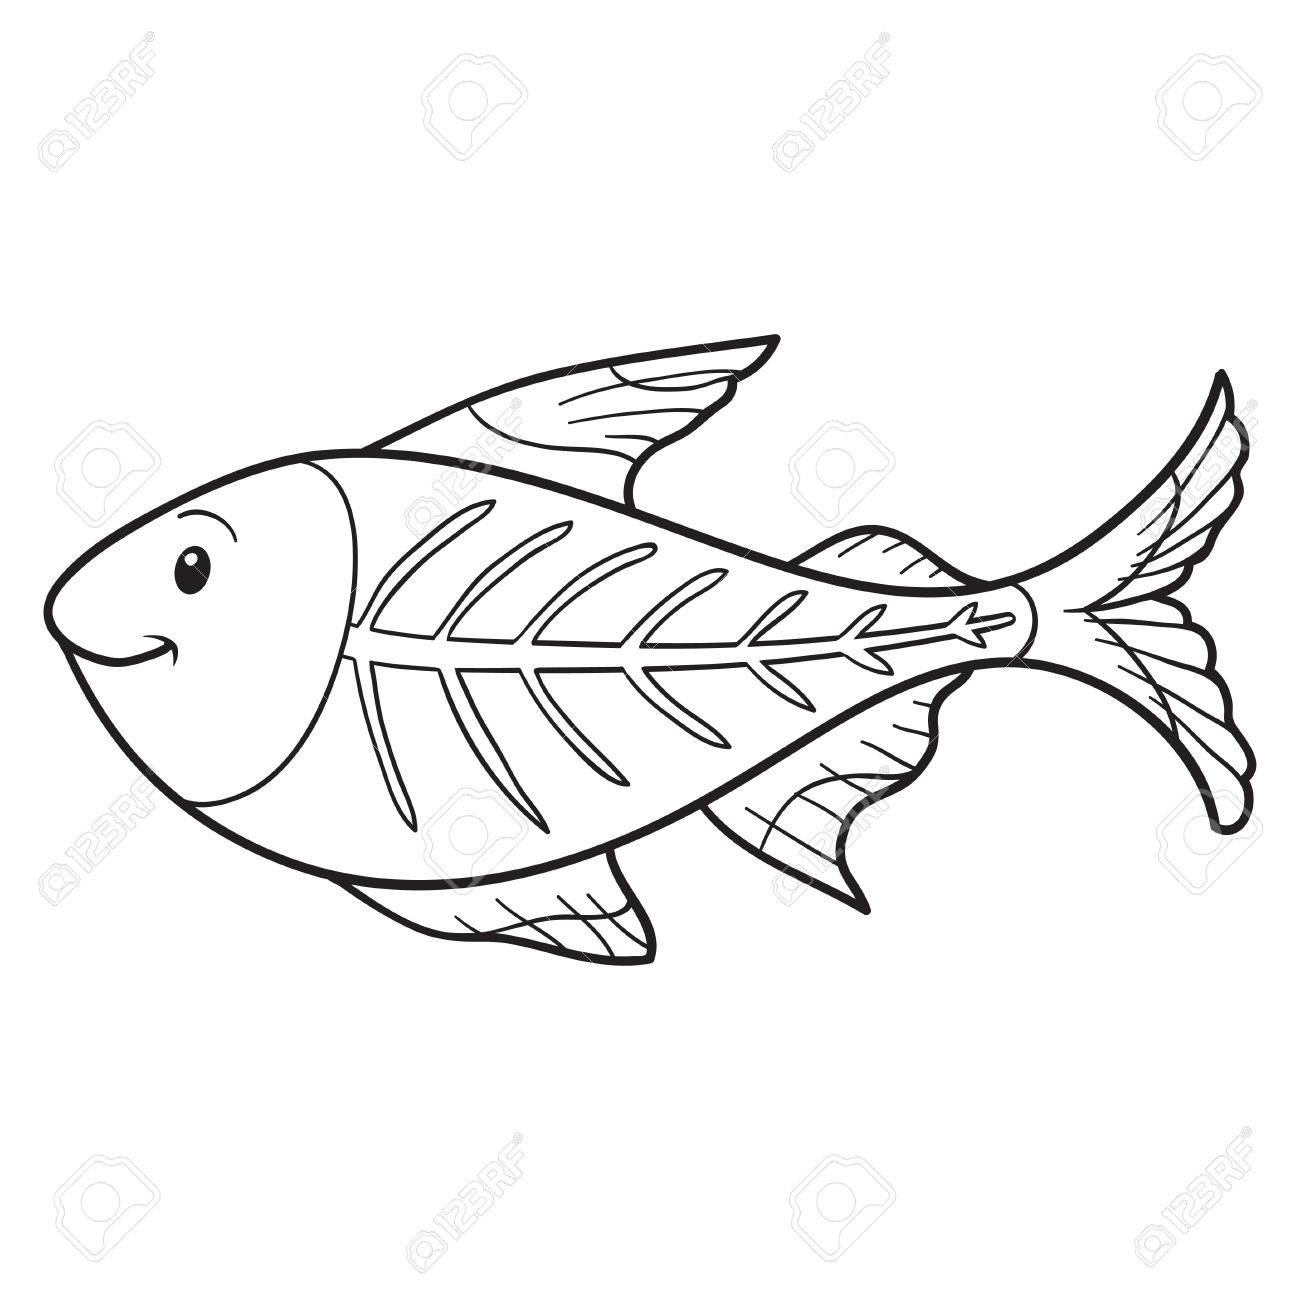 Coloring Book X Ray Fish Stock Vector